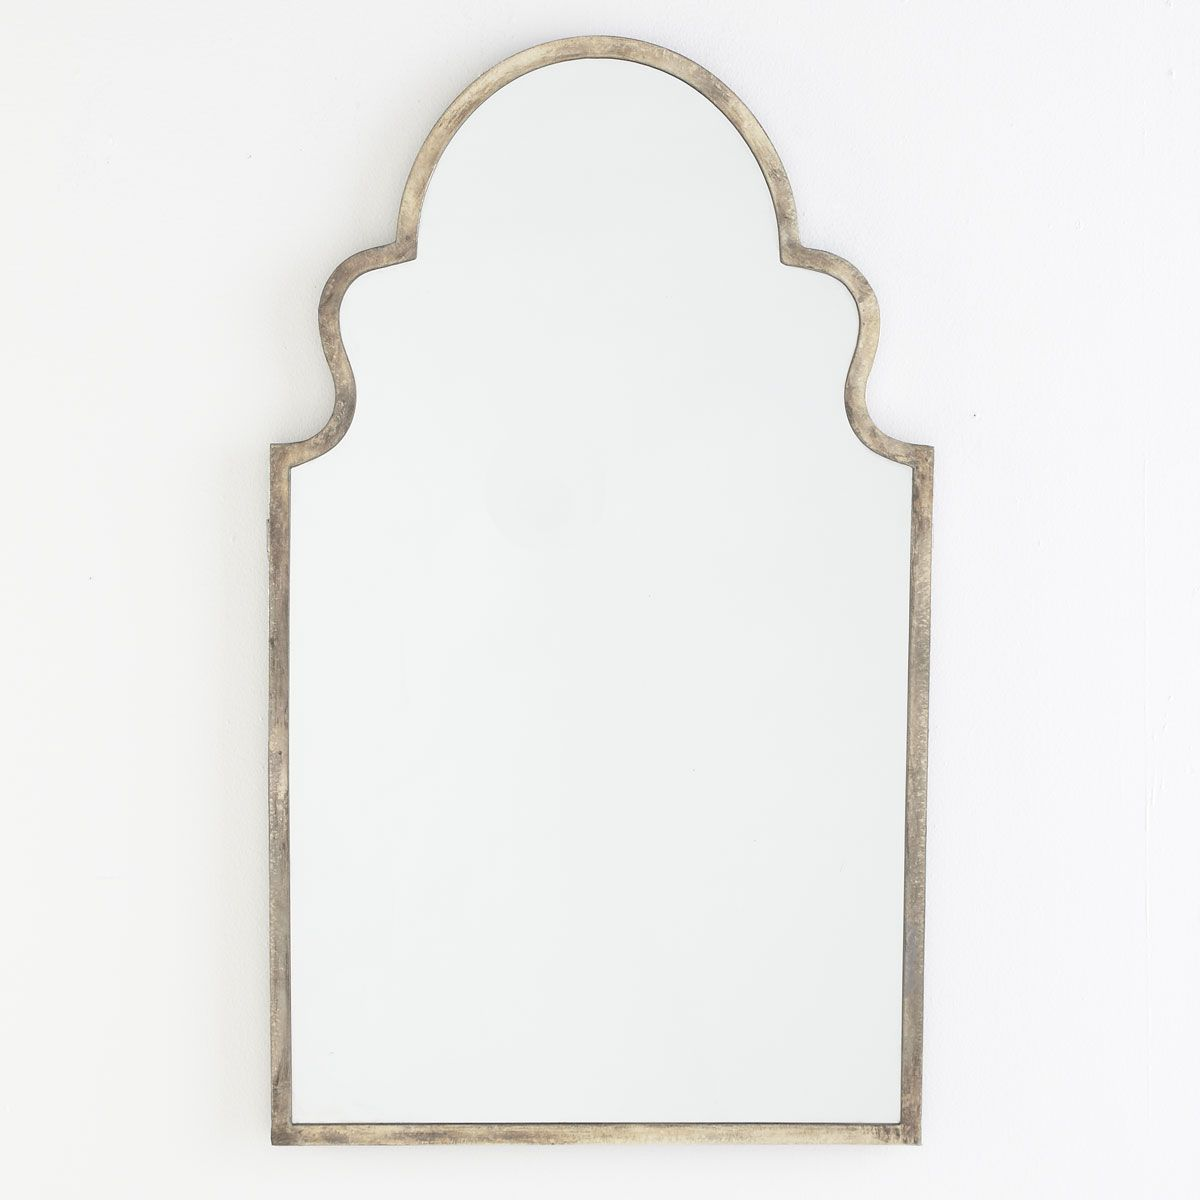 W8180 Handfinished Silver Mirror Moroccan Mirrors Moroccan Mirror Mediterranean Mirrors Ornate Mirror [ 1200 x 1200 Pixel ]